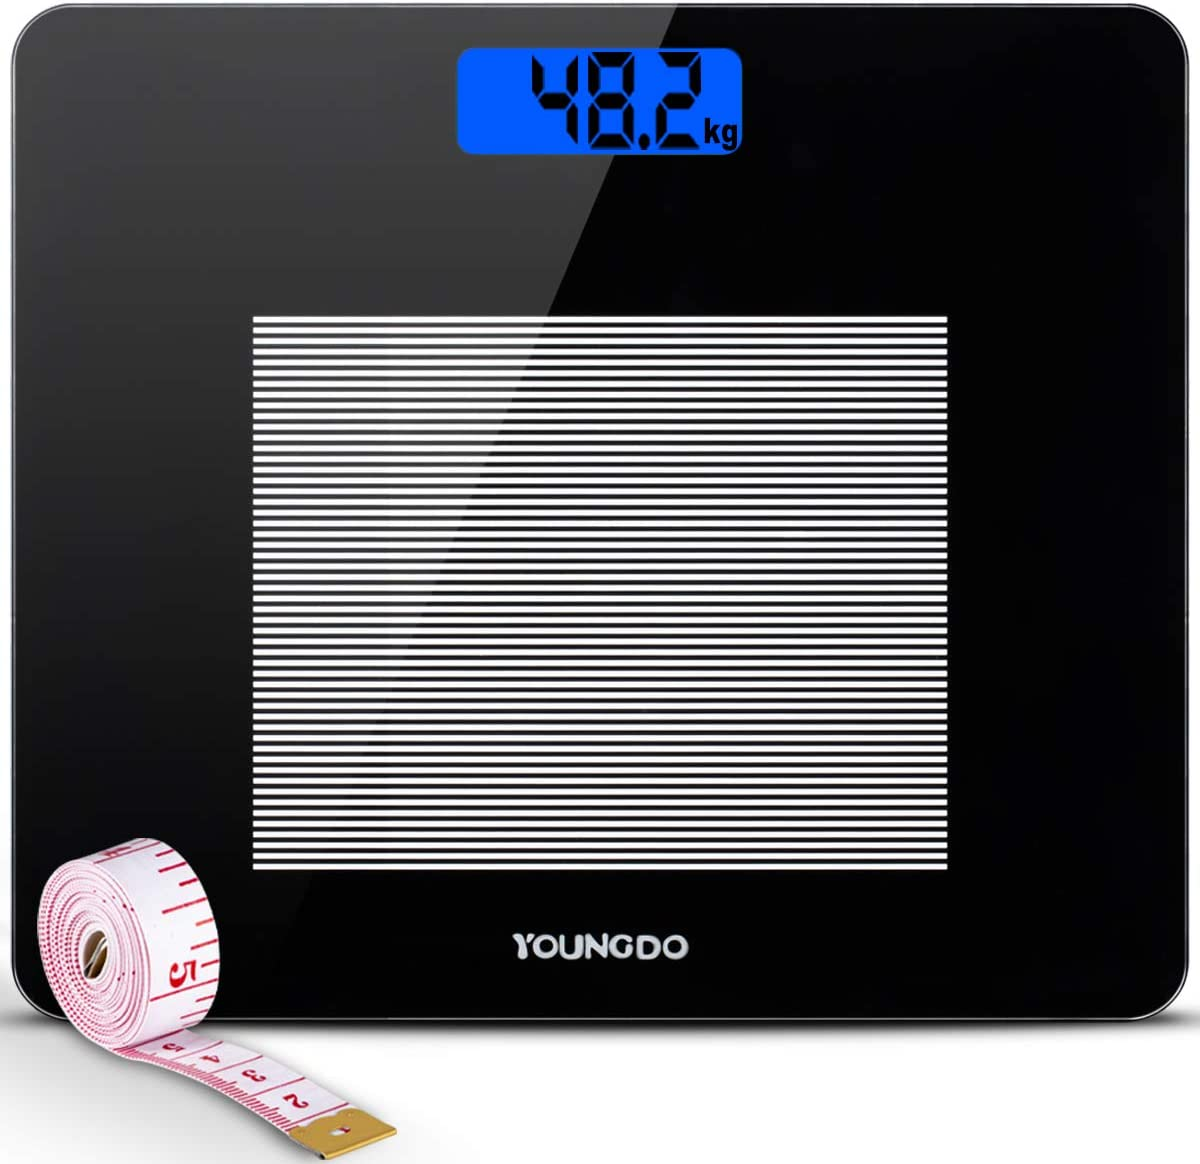 YOUNGDO Digital Bathroom Scale, Highly Accurate Body Weight Scales with Body Tape Measure, Large Blue LCD Backlight Display, 400 Pounds